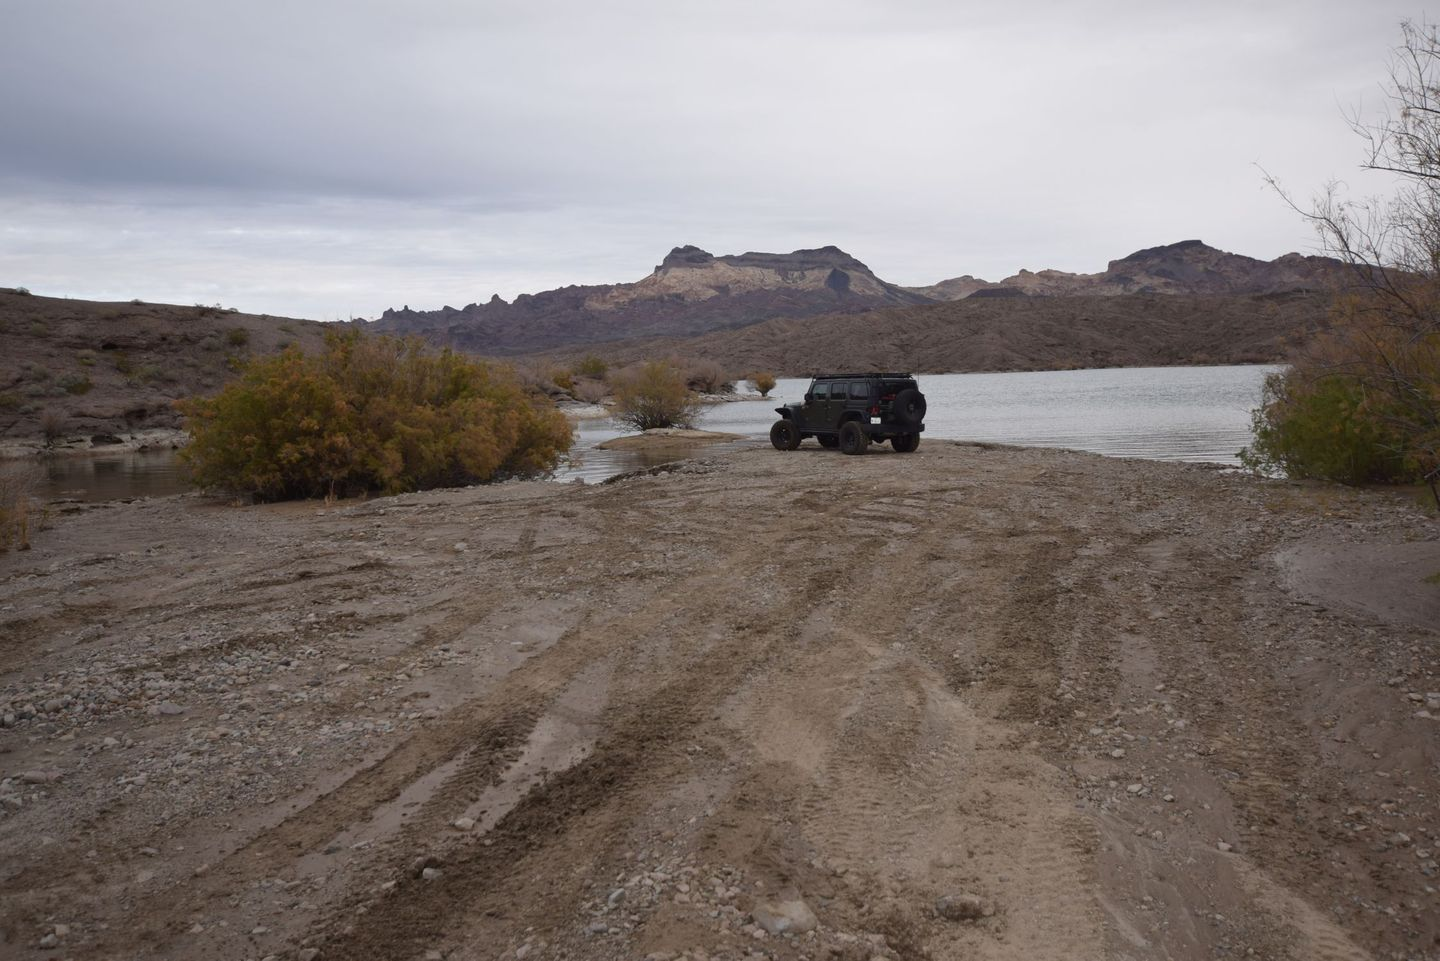 Camping: Nelson Goldmine Trail